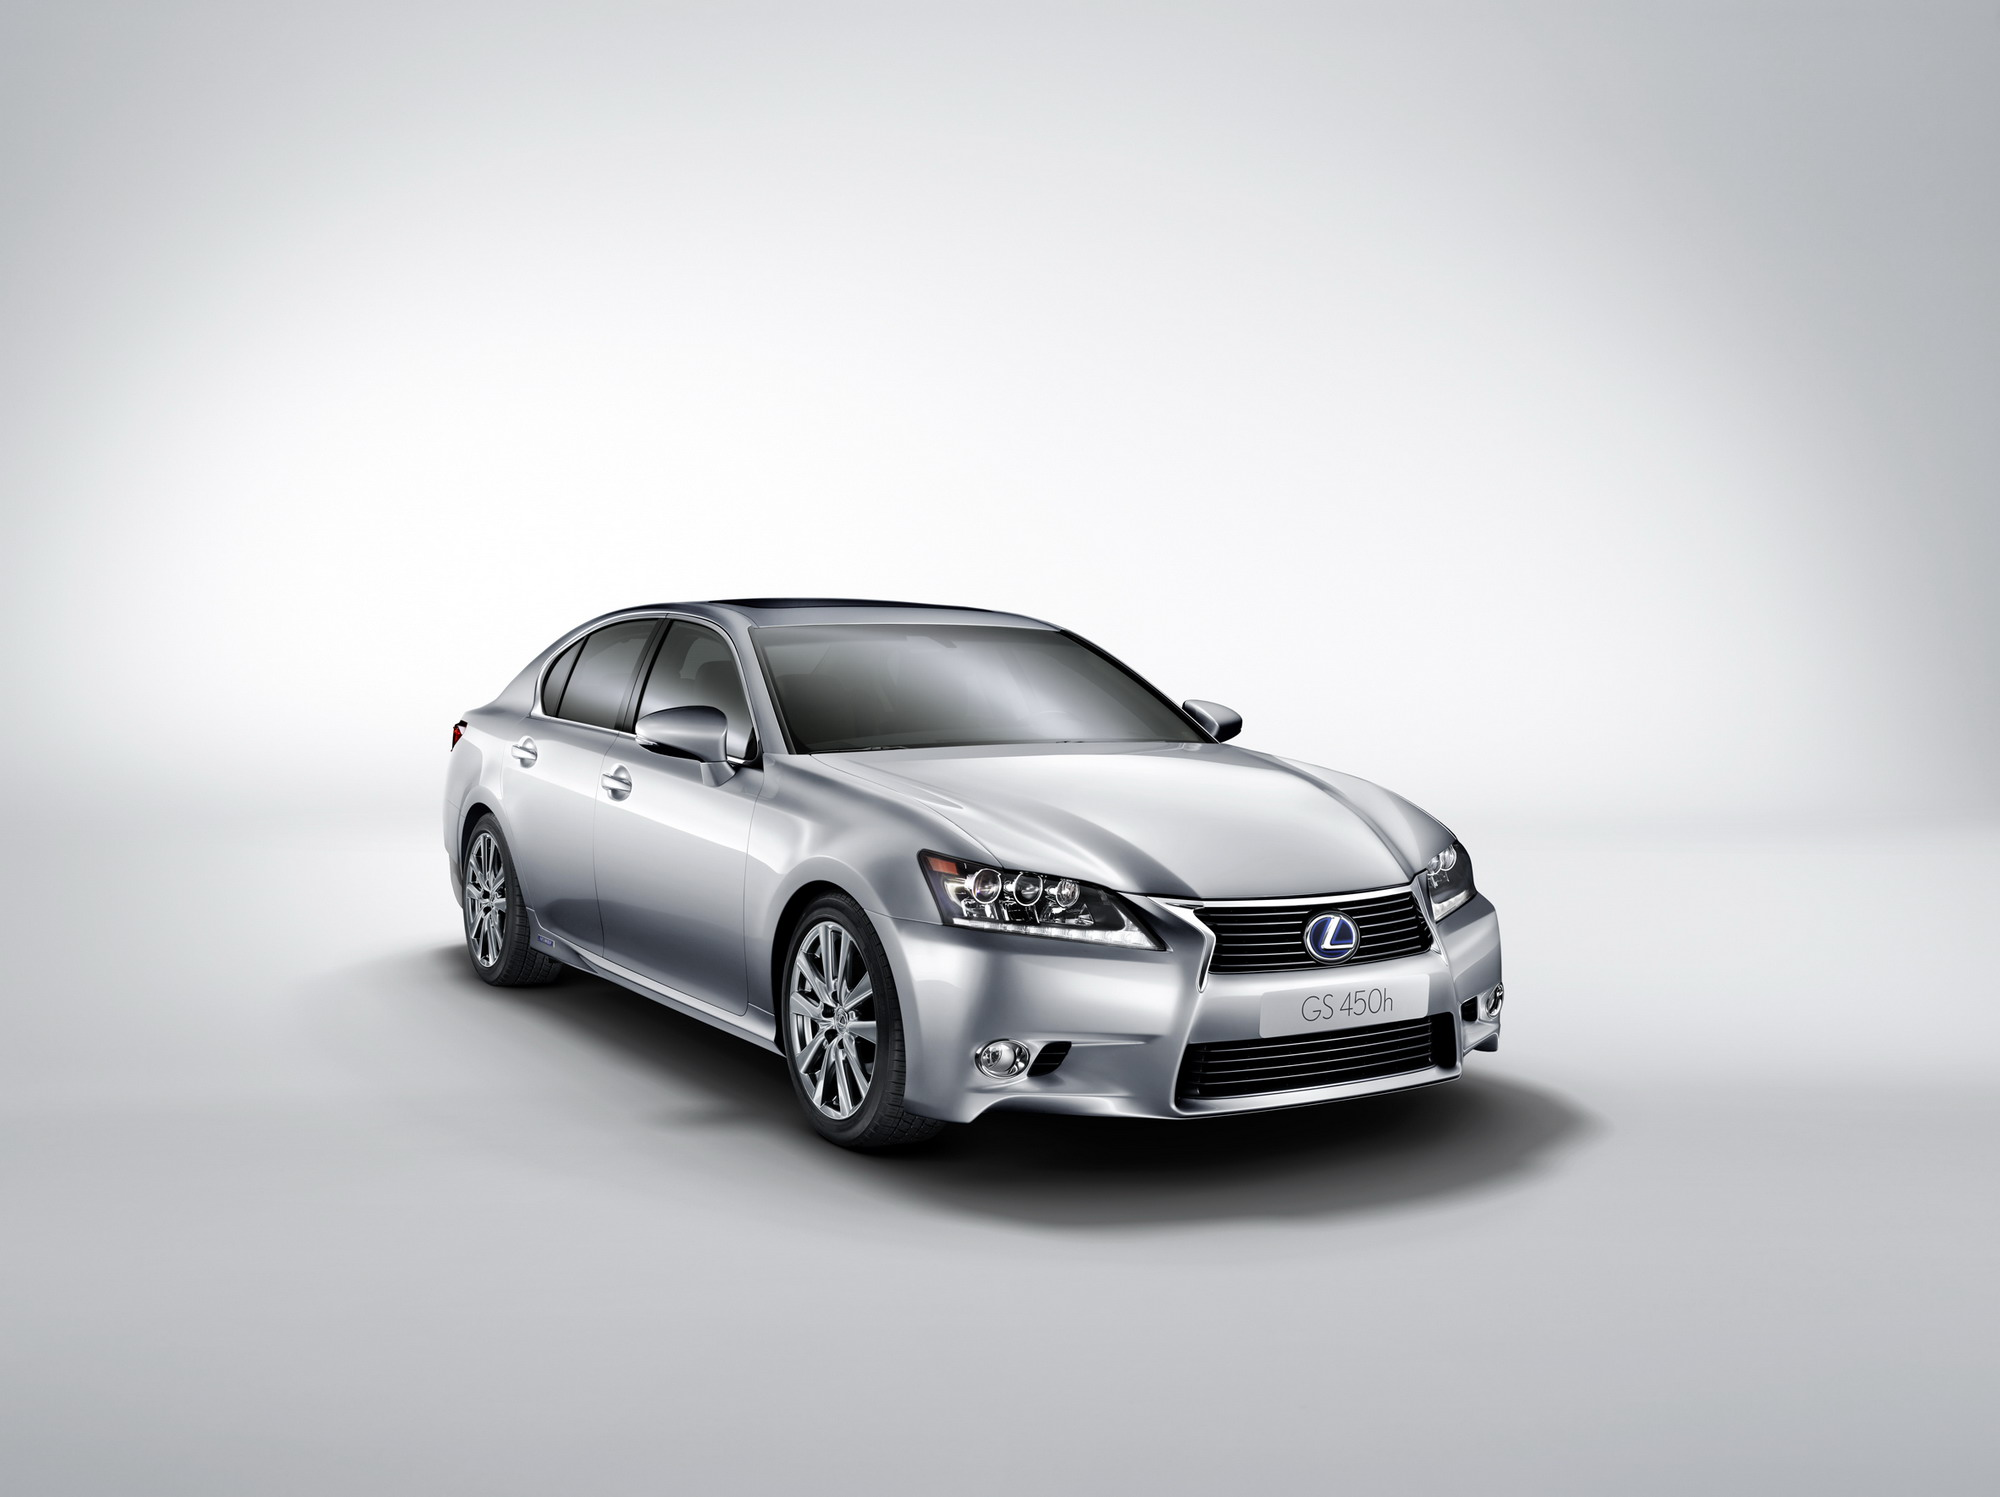 2013 lexus gs 450h top speed. Black Bedroom Furniture Sets. Home Design Ideas